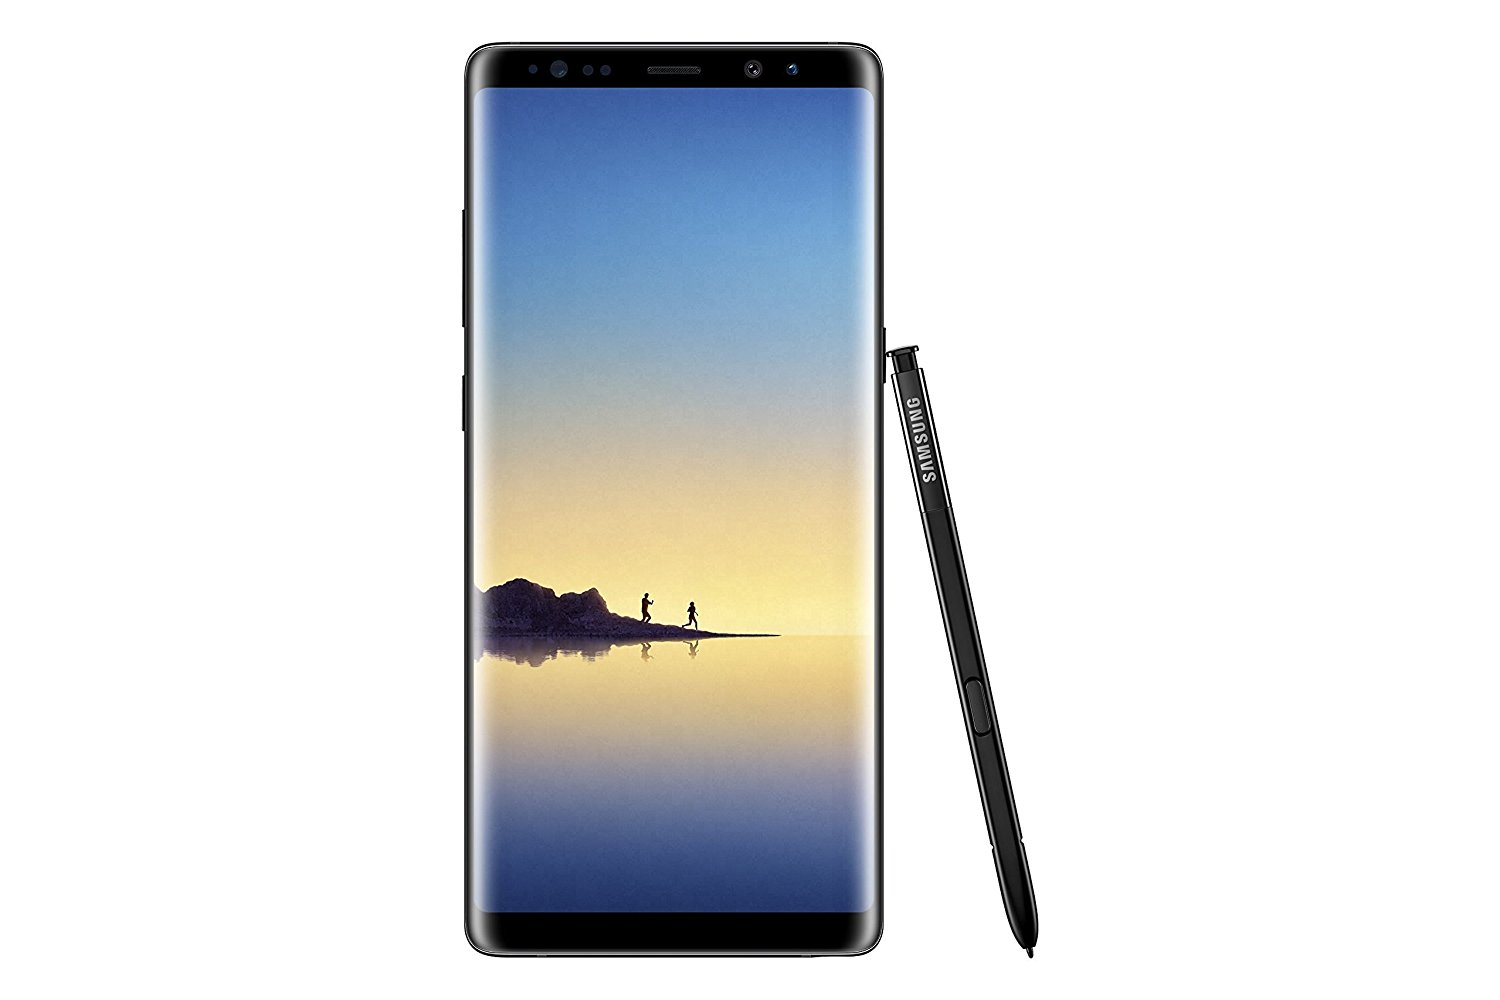 samsung galaxy note 8 promo smartphone by mmp. Black Bedroom Furniture Sets. Home Design Ideas